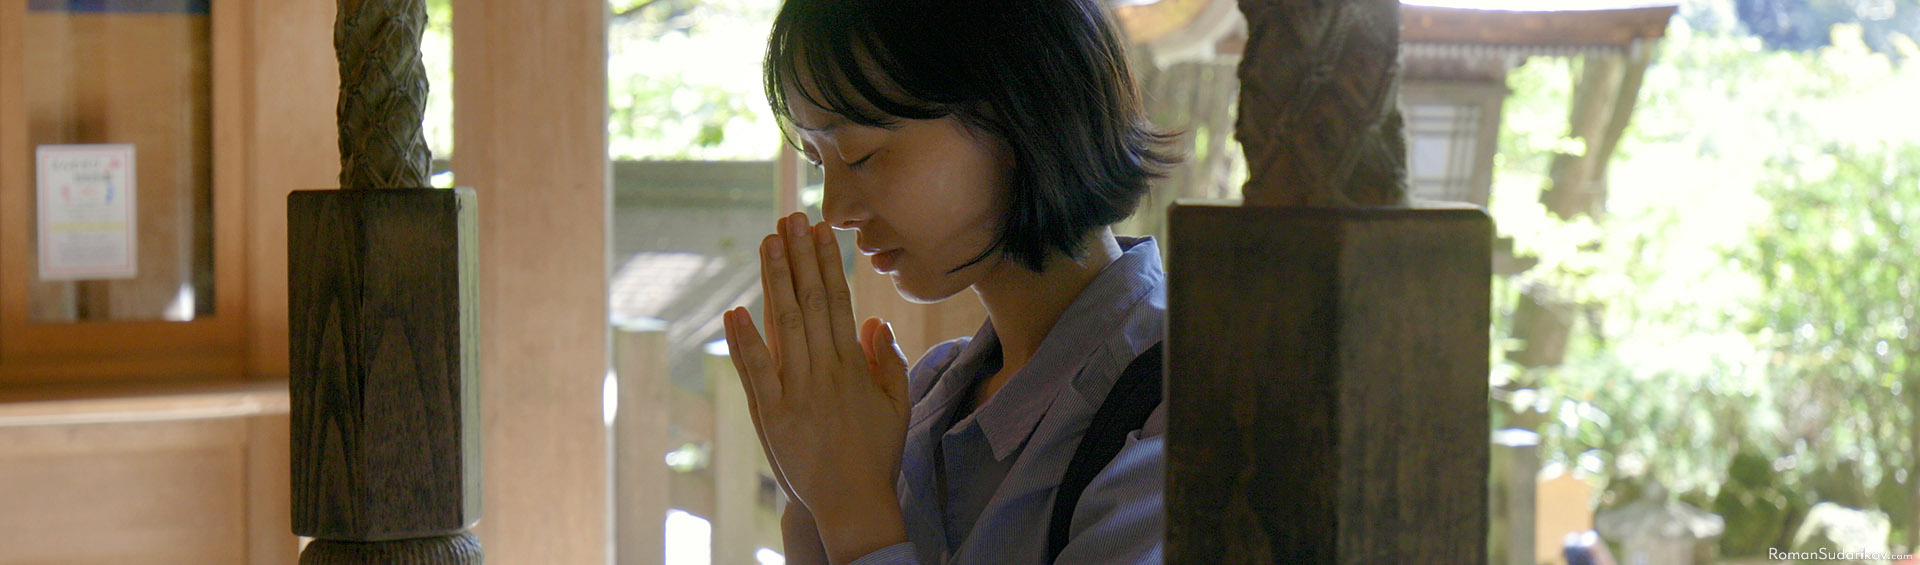 Young woman is praying at Kifune Jinja Shrine located in mountains near Kyoto.